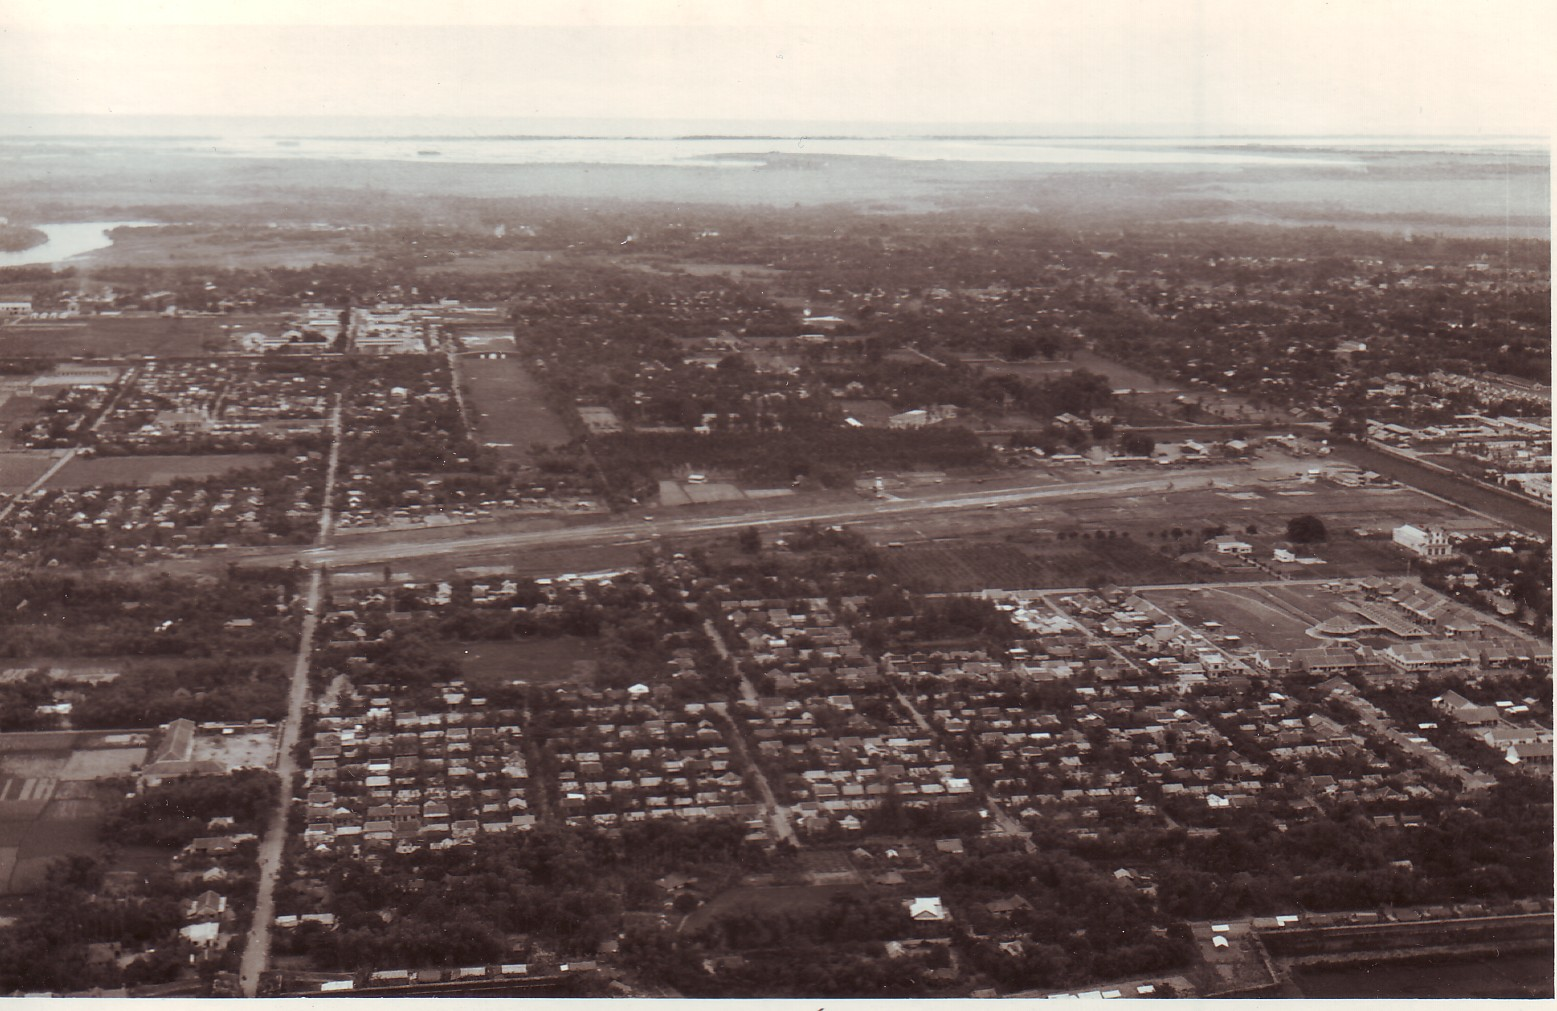 Airfield%2C_Hue_Citadel_July%2C_1967.jpg